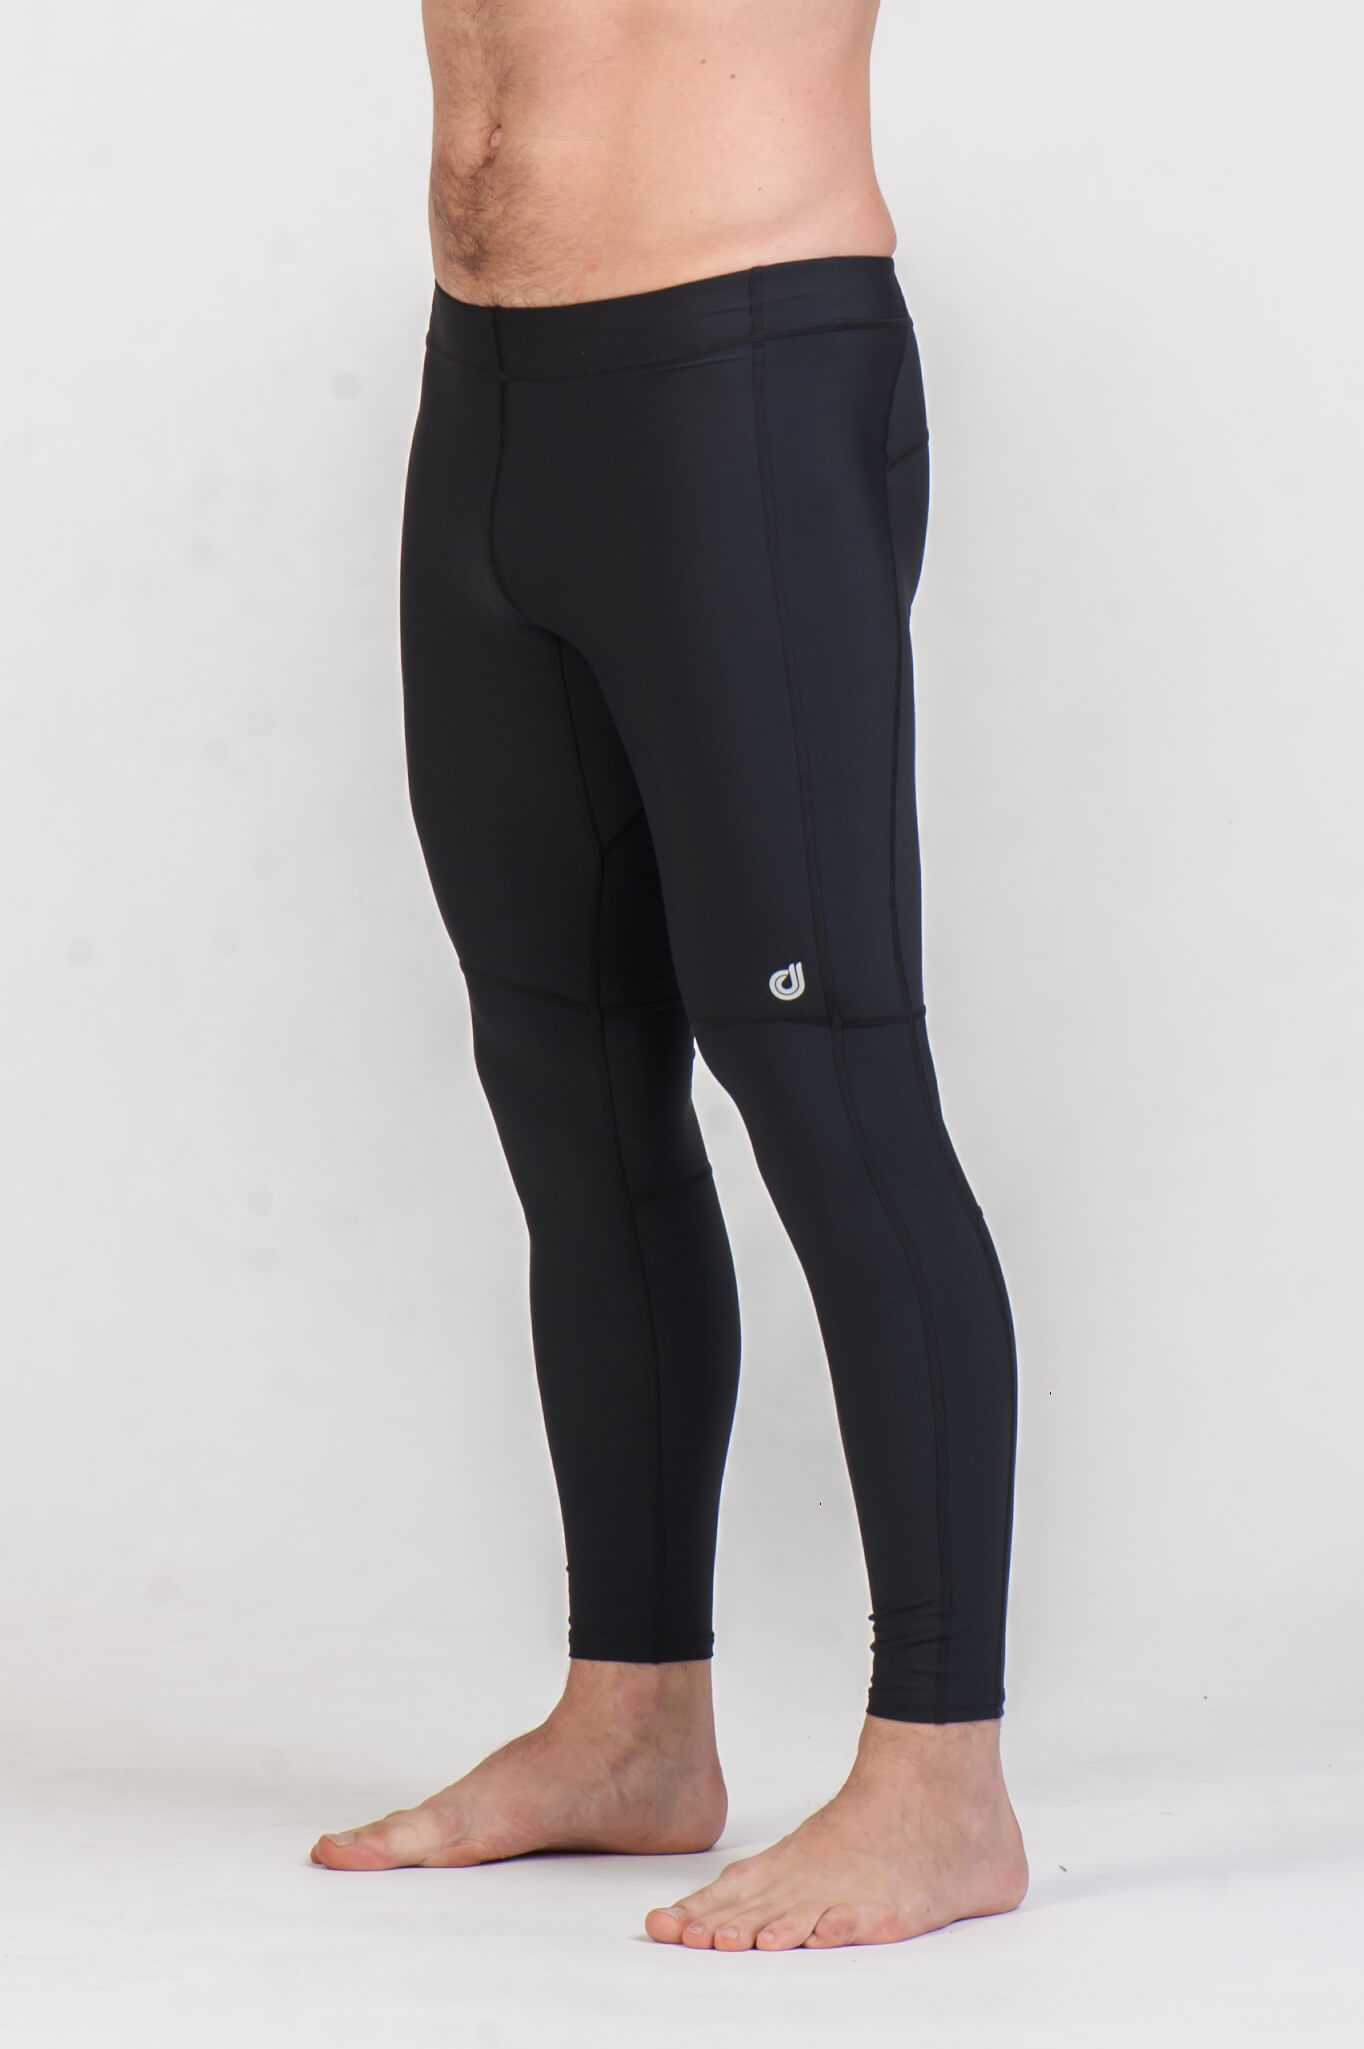 b73d9cd415 Man Up Férfi Leggings Fekete | DogDays Yoga Wear